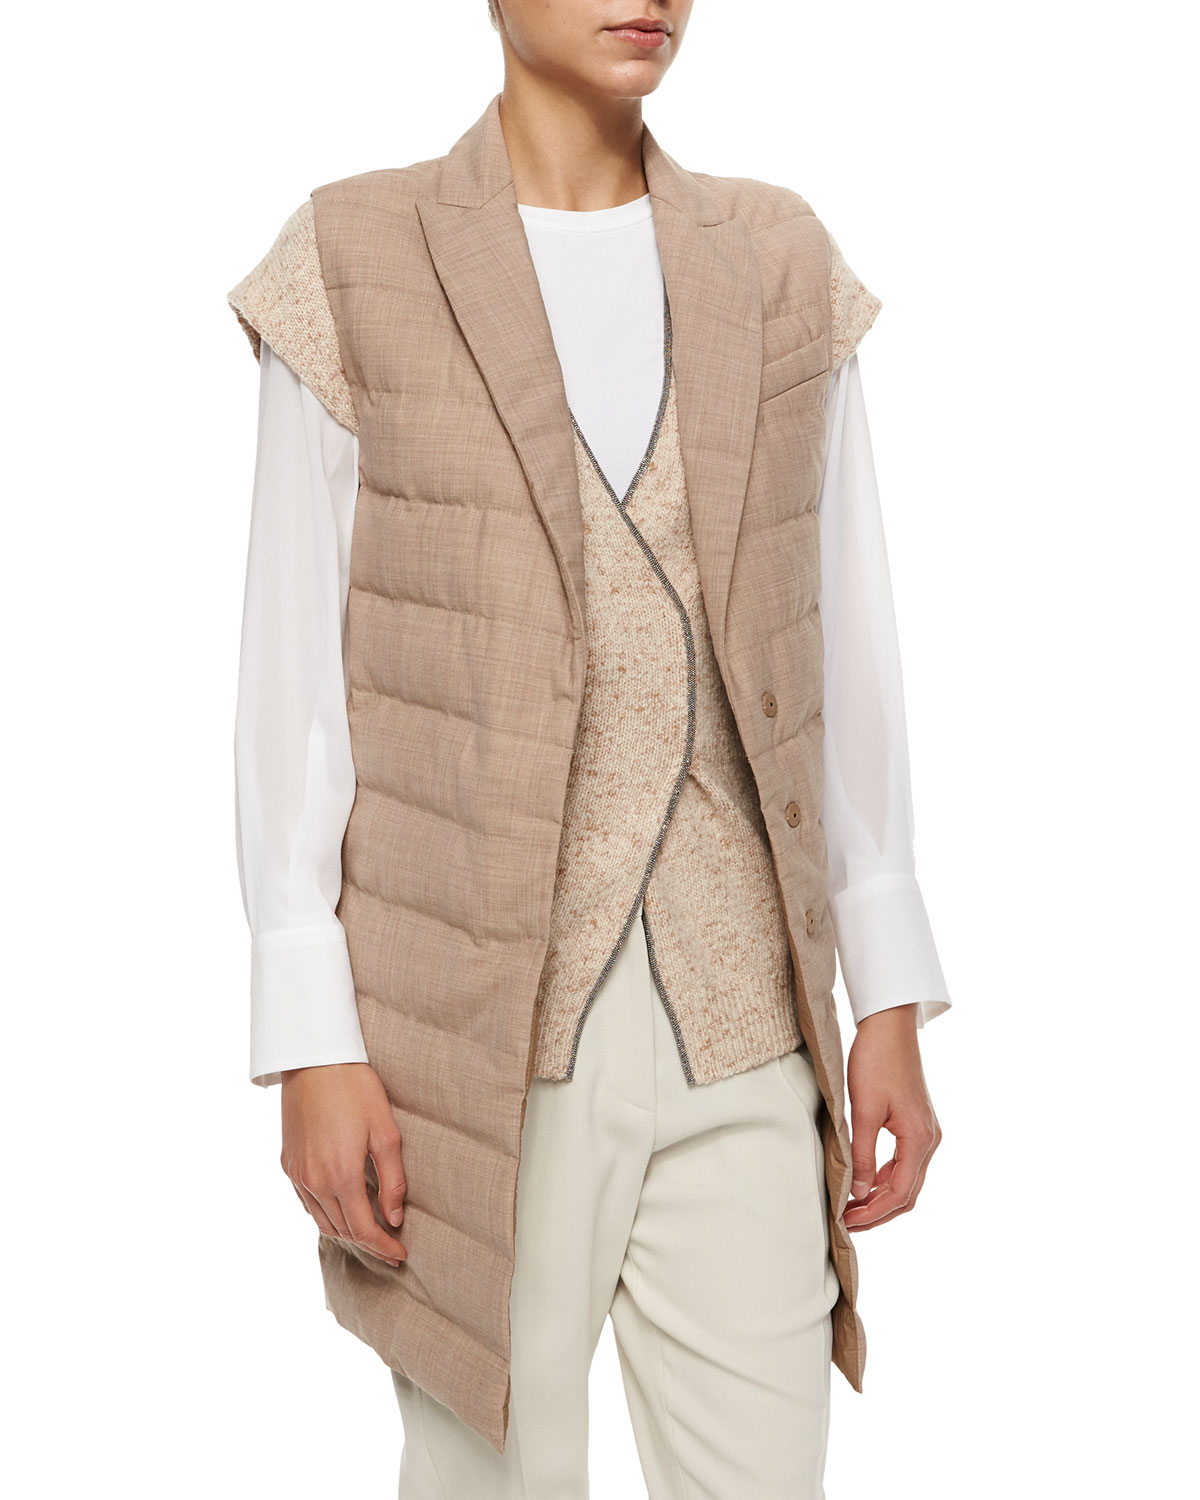 Brunello Cucinelli Lace-Trimmed Silk Vest Buy Cheap Prices Outlet Supply Buy Cheap Countdown Package Cheap Hot Sale 7egMsU5ZB1